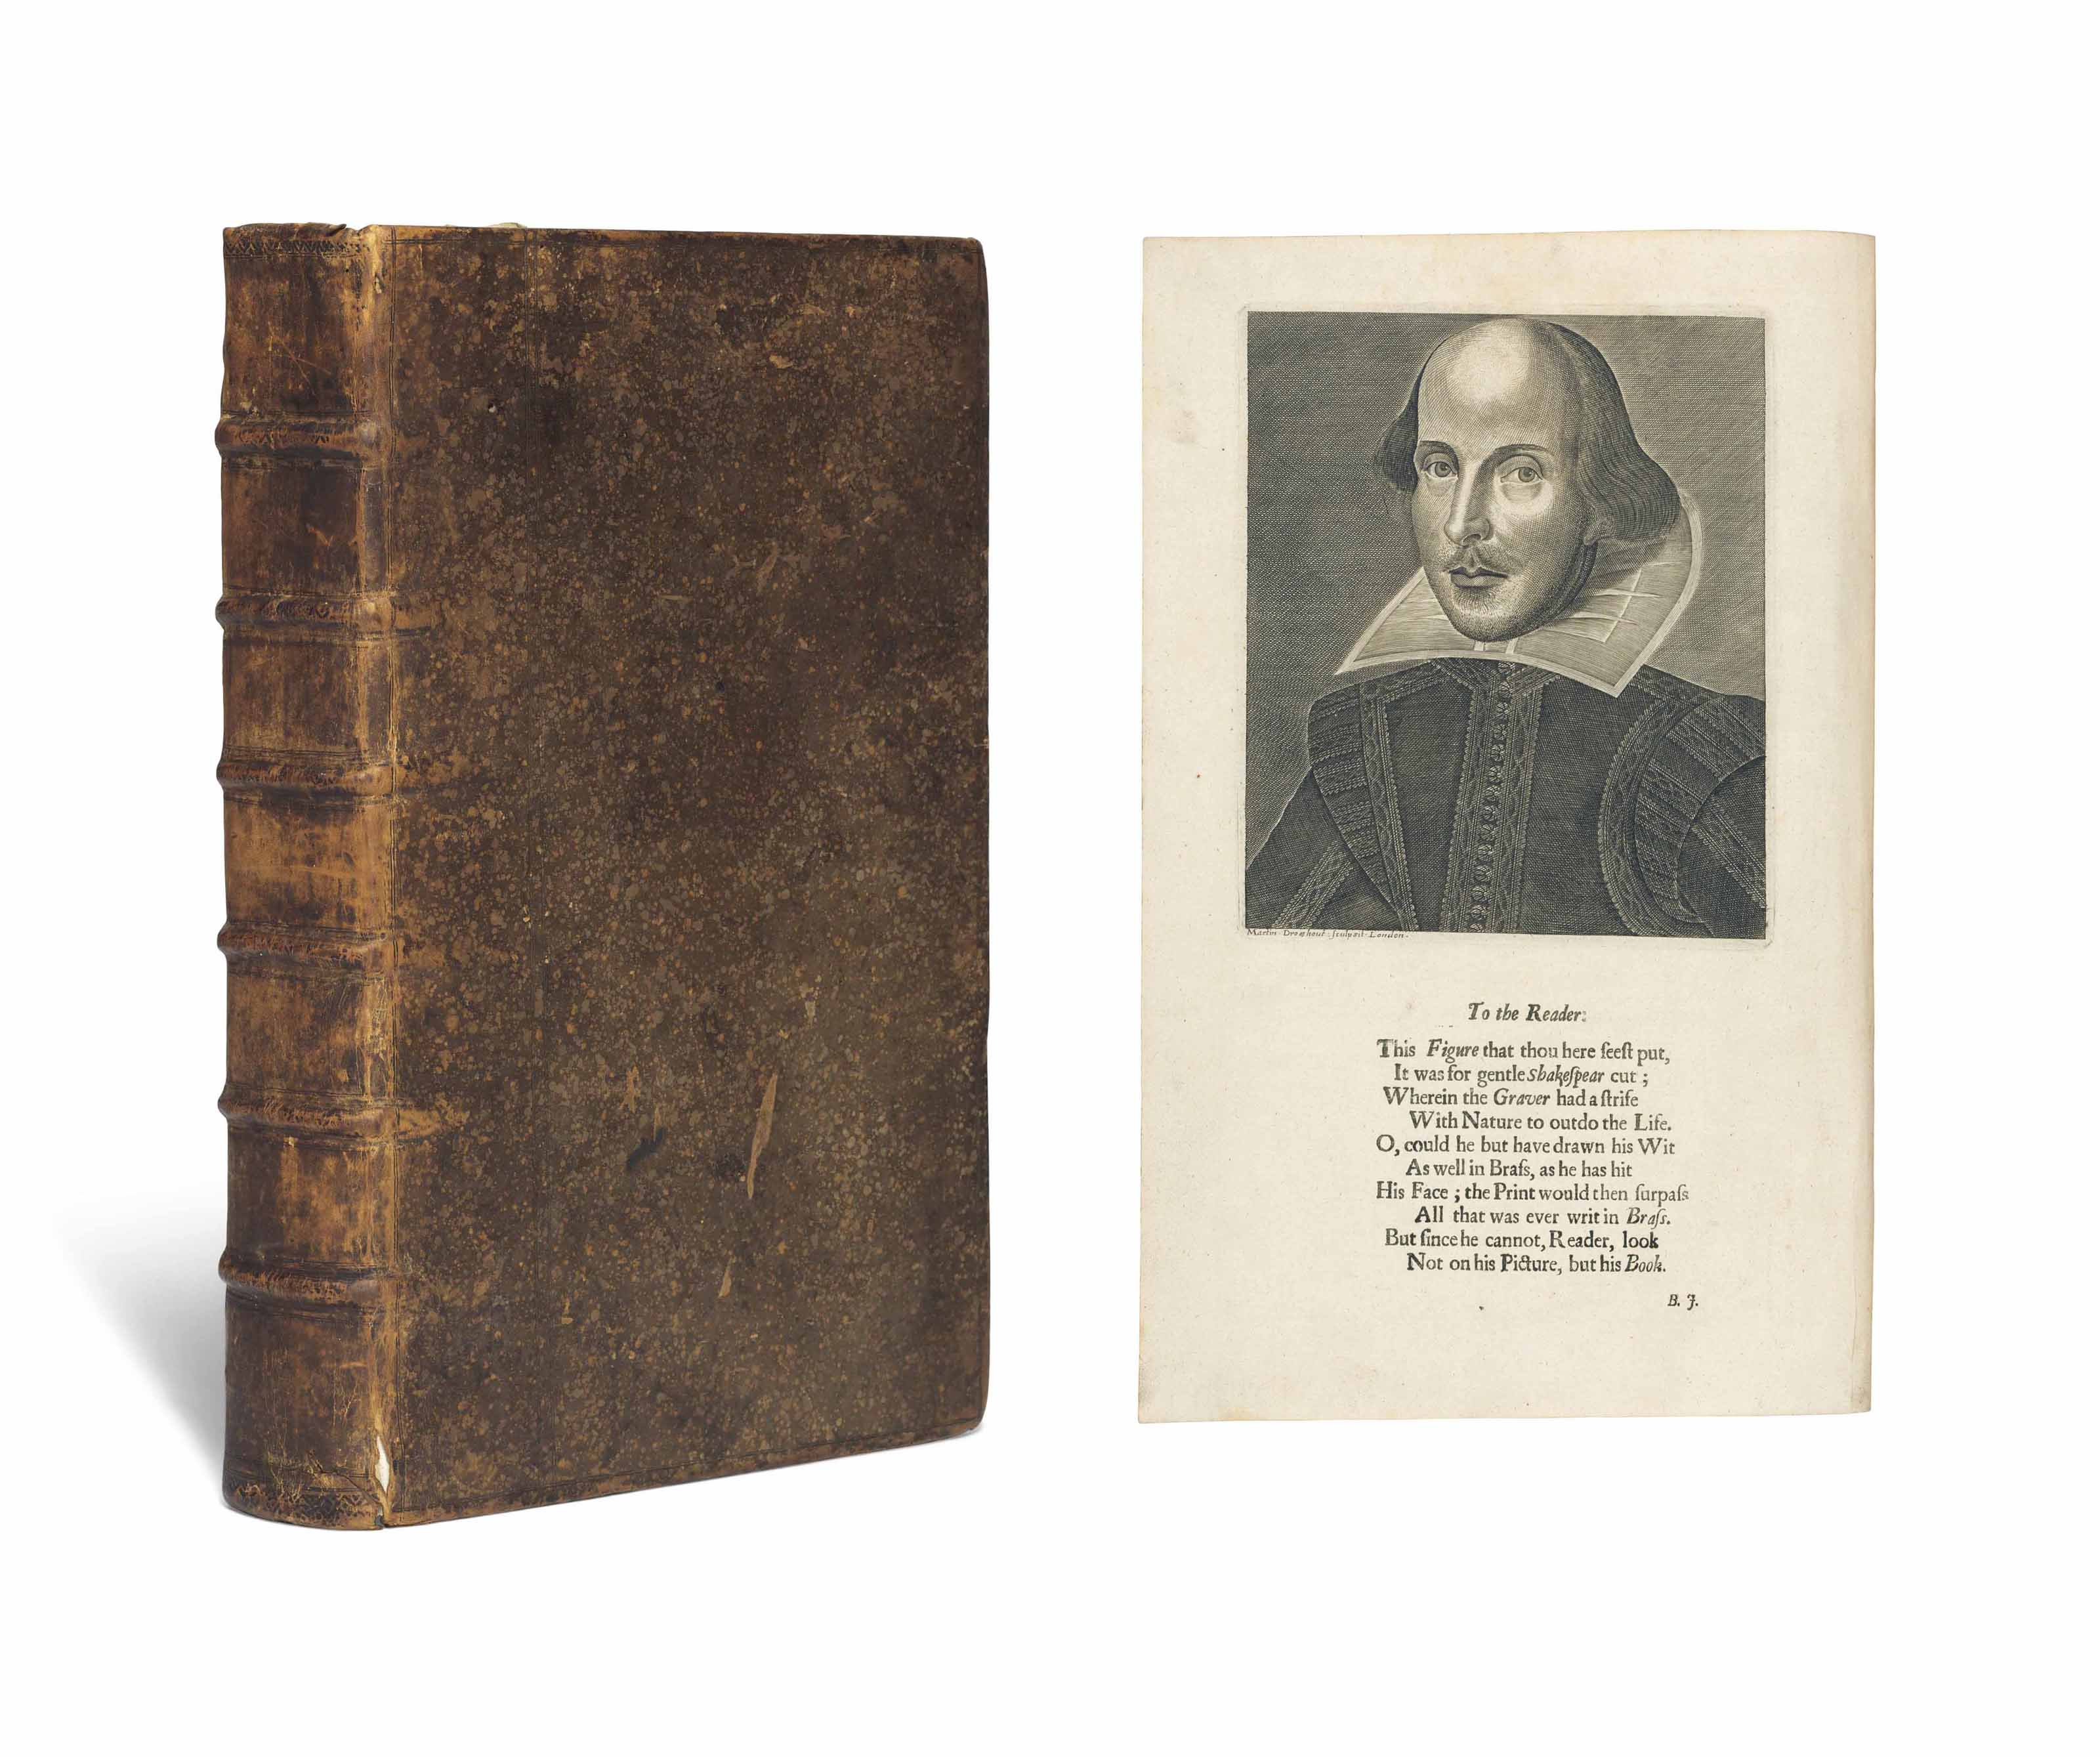 SHAKESPEARE, William (1564-1616). Comedies, Histories, and Tragedies. Published according to the true Original Copies. Unto which is added, Seven Plays, never before Printed in Folio. The Fourth edition. Edited by John Heminge (d. 1630) and Henry Condell (d. 1627), except for Pericles and six other plays added by the publisher of the Third Folio, Philip Chetwin (d. 1680). London: Printed [by Robert Roberts and others] for H. Herringman, E. Brewster, and R. Bentley, 1685.